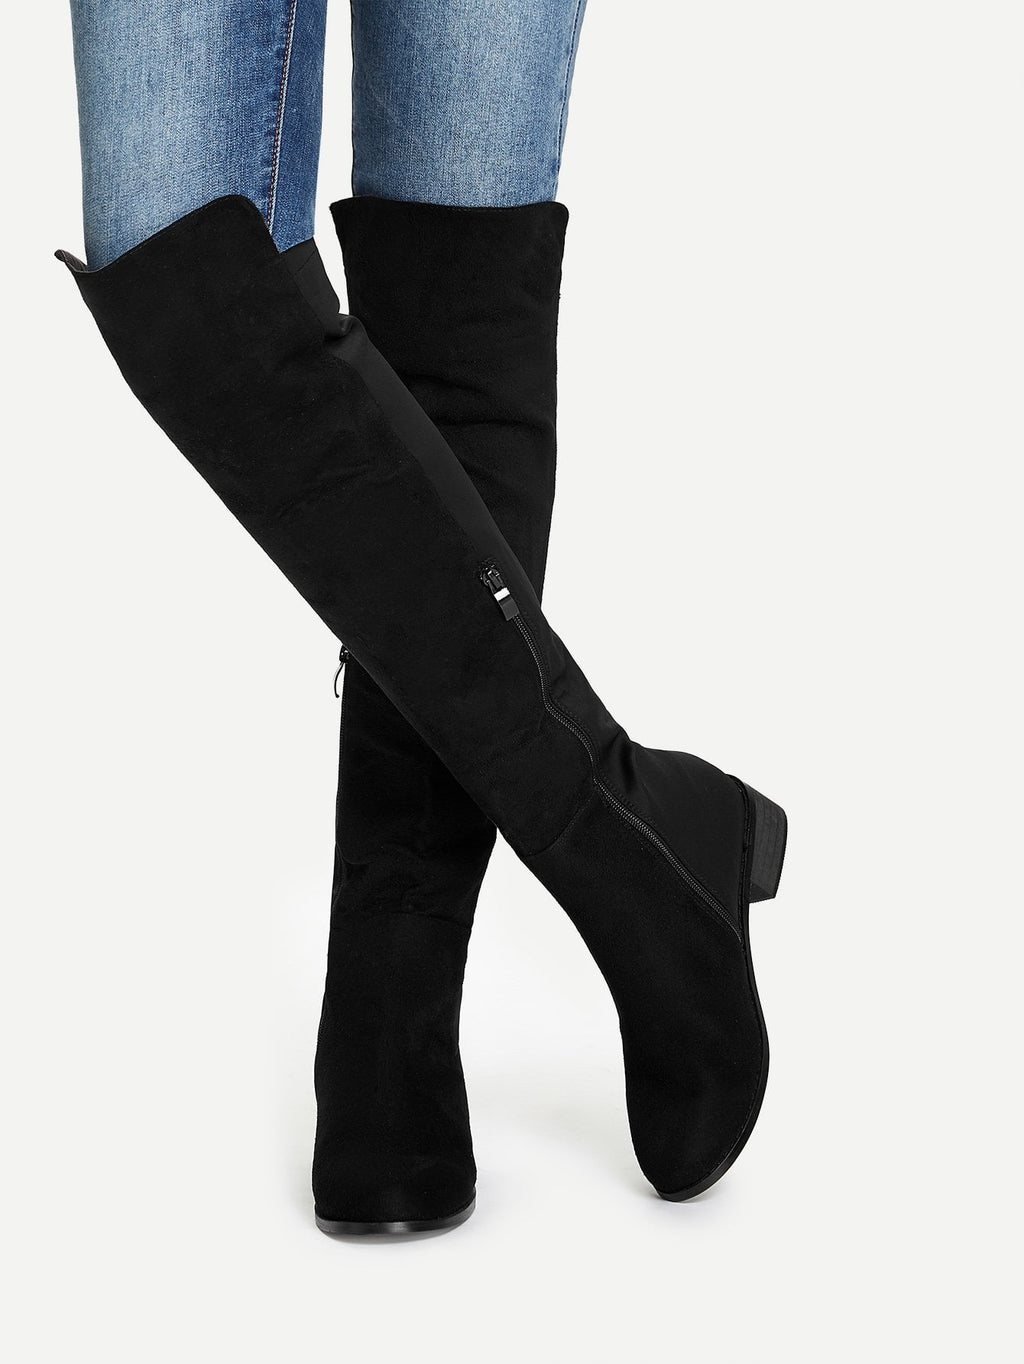 Women Boots - Knee Length Plain Boots